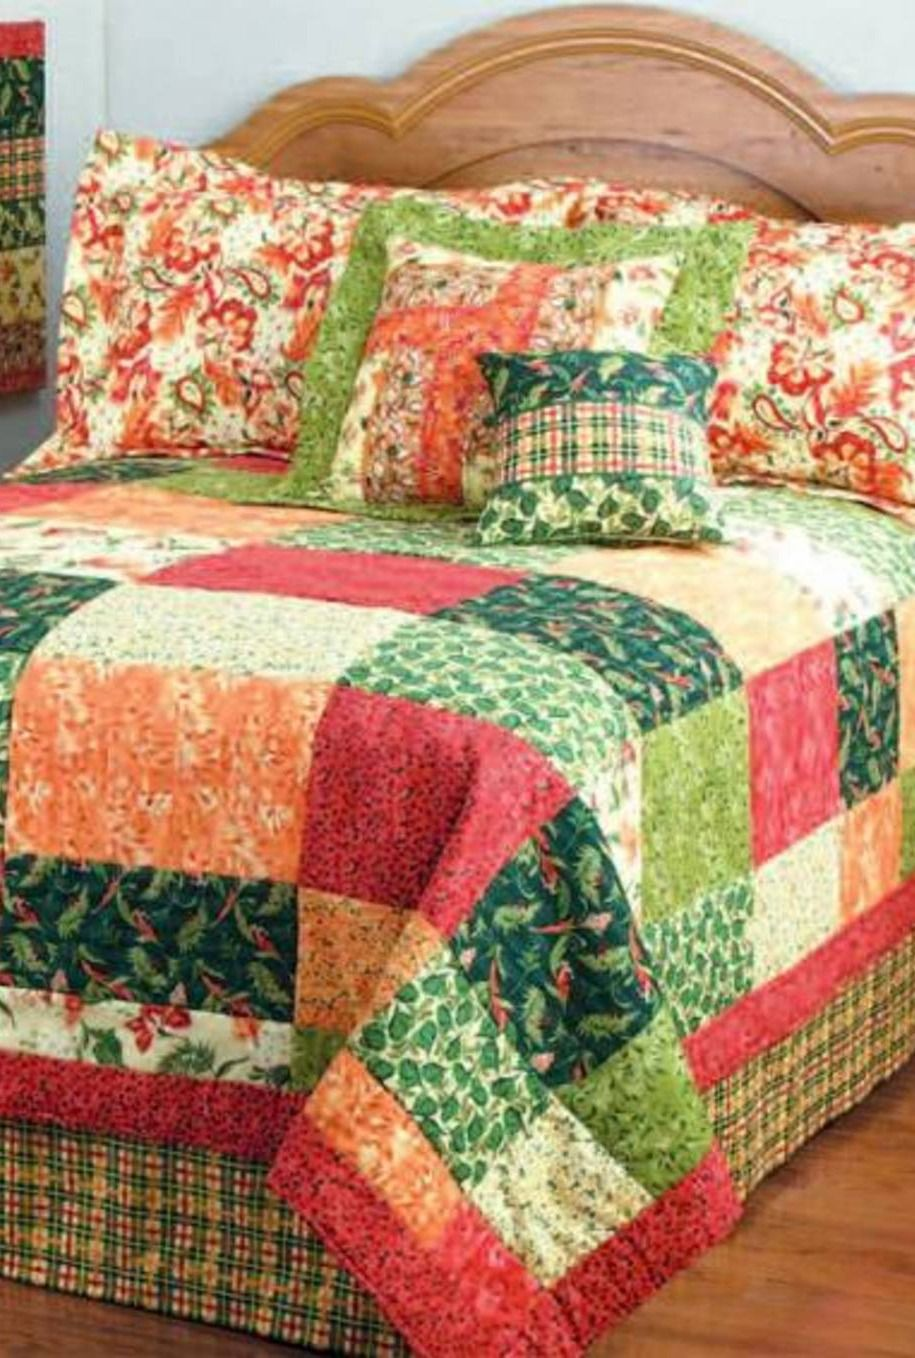 Patchwork bed sheets patterns - Patchwork Bed Sheets Patterns 33